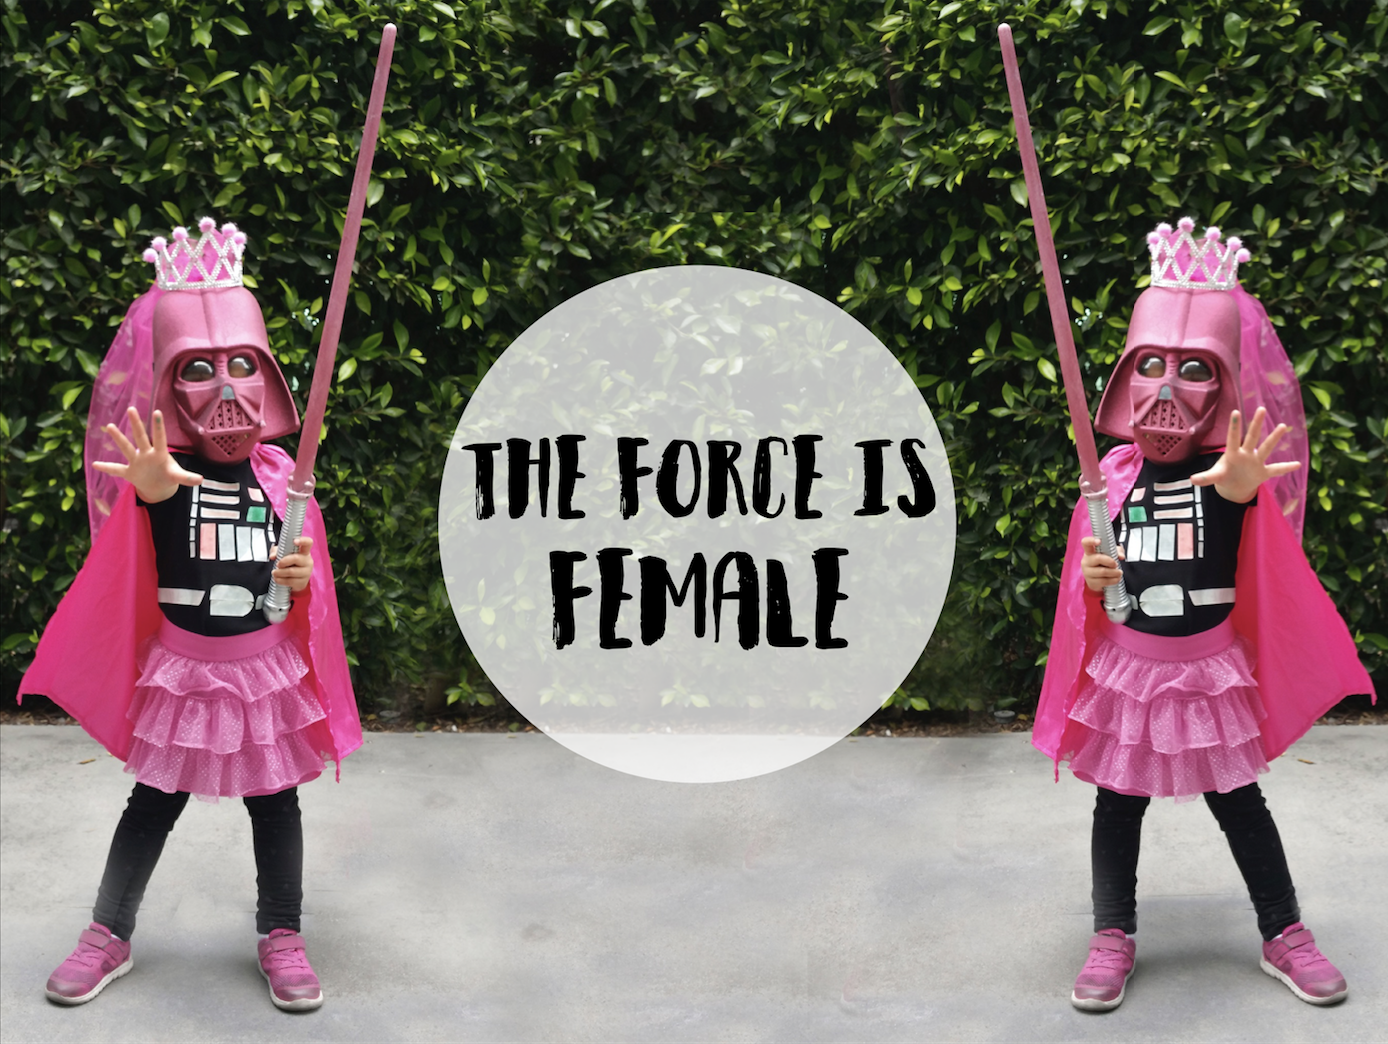 Star Wars Pink Darth Vader Princess DIY Costume Adorable Creative Fun